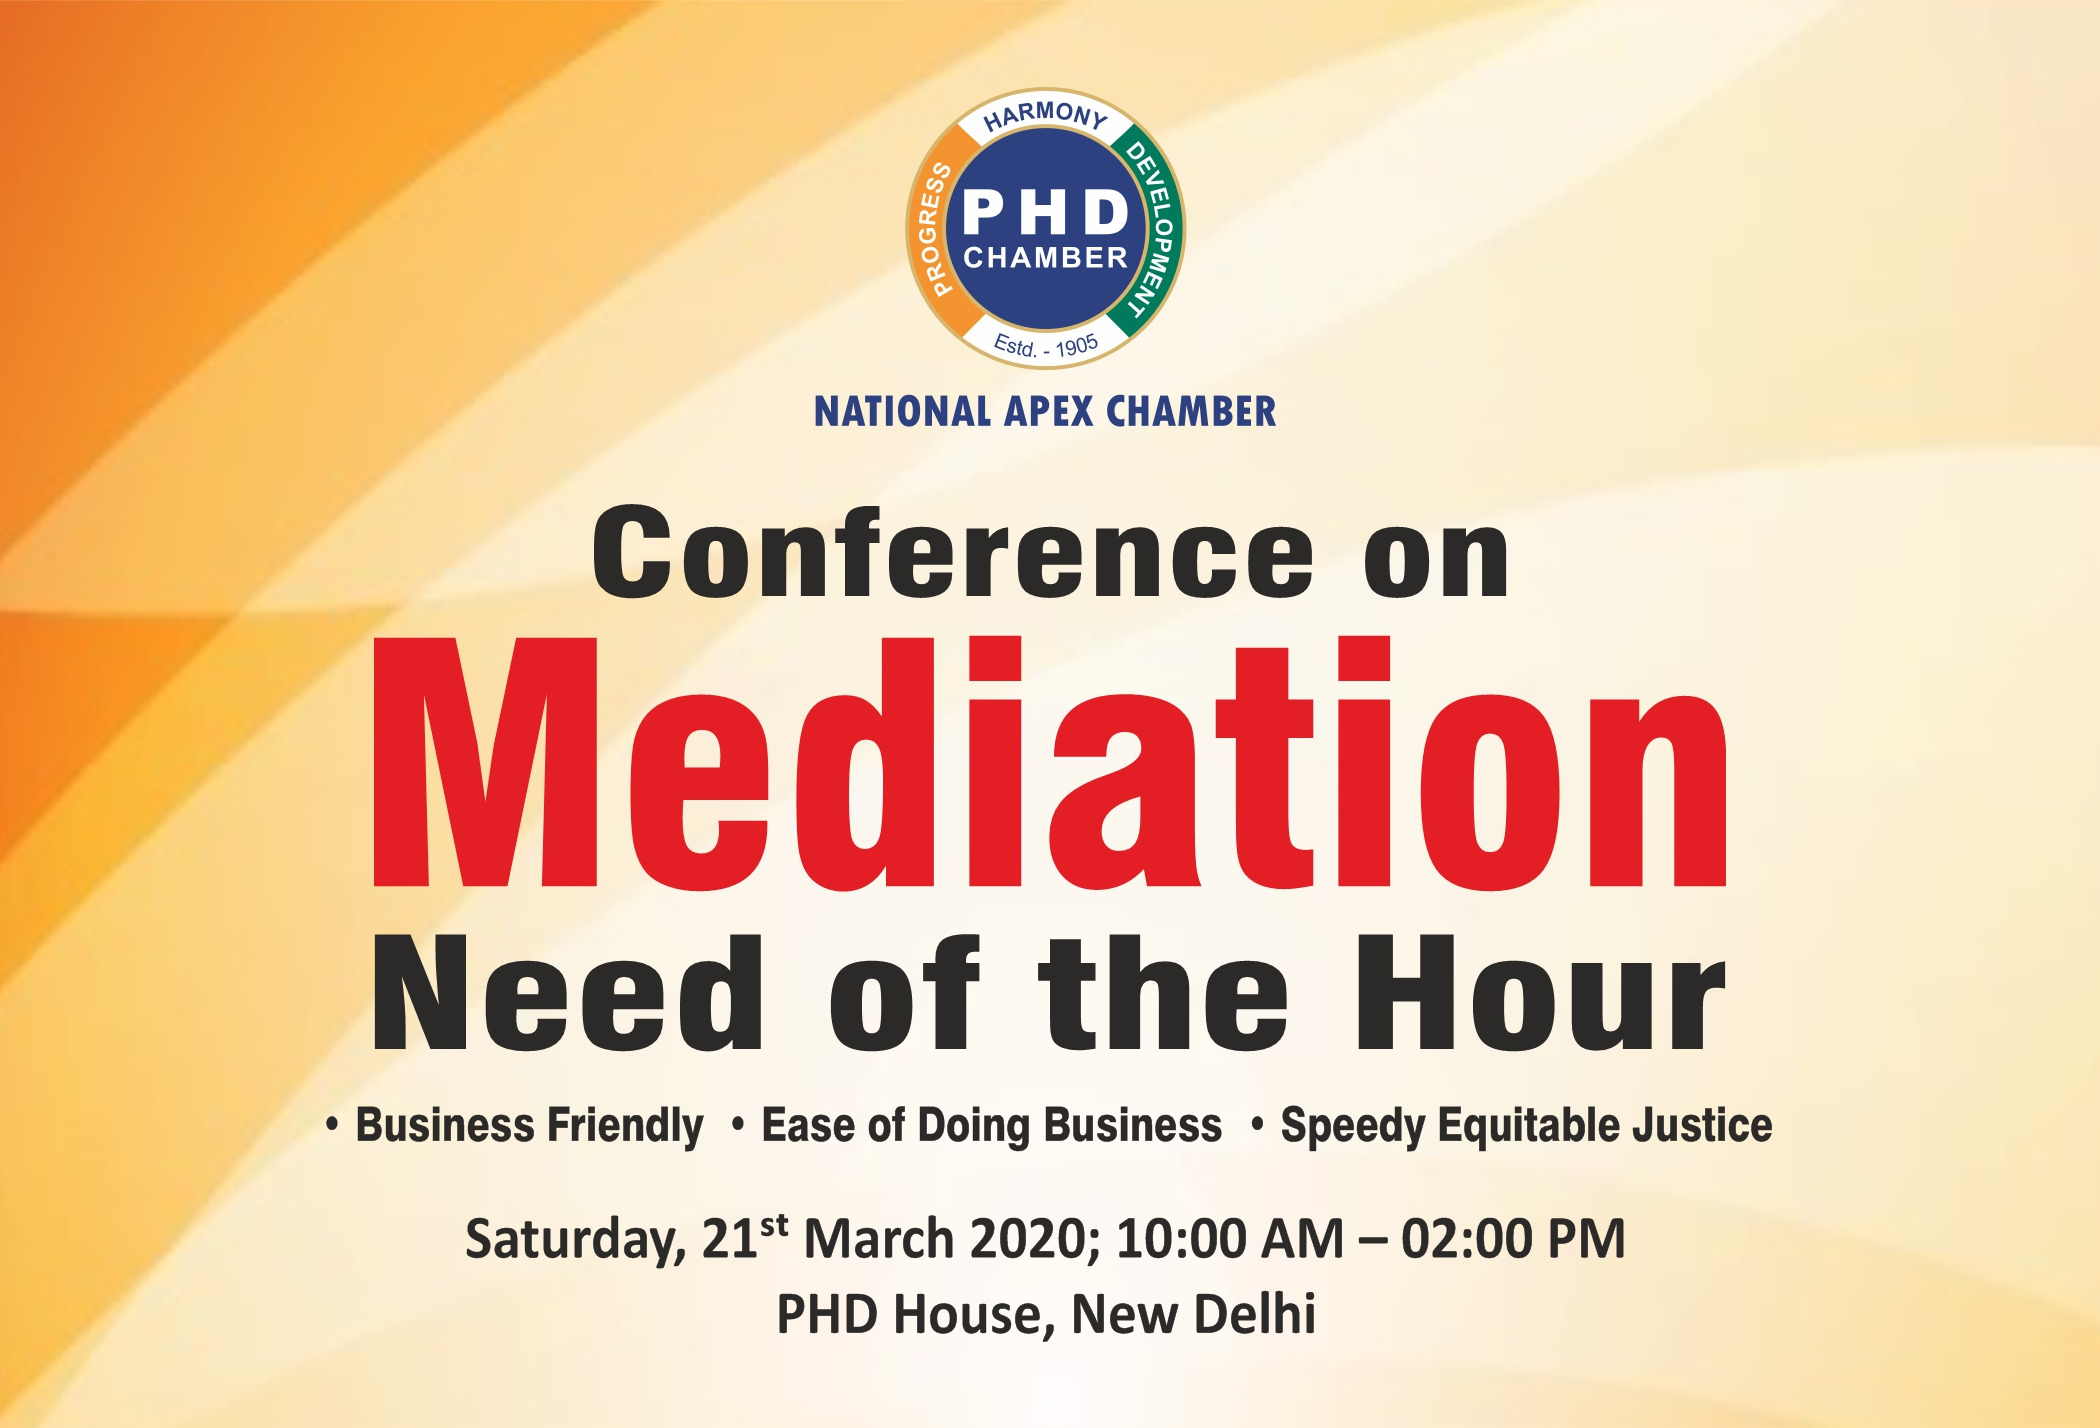 Conference on Mediation: Need of the Hour